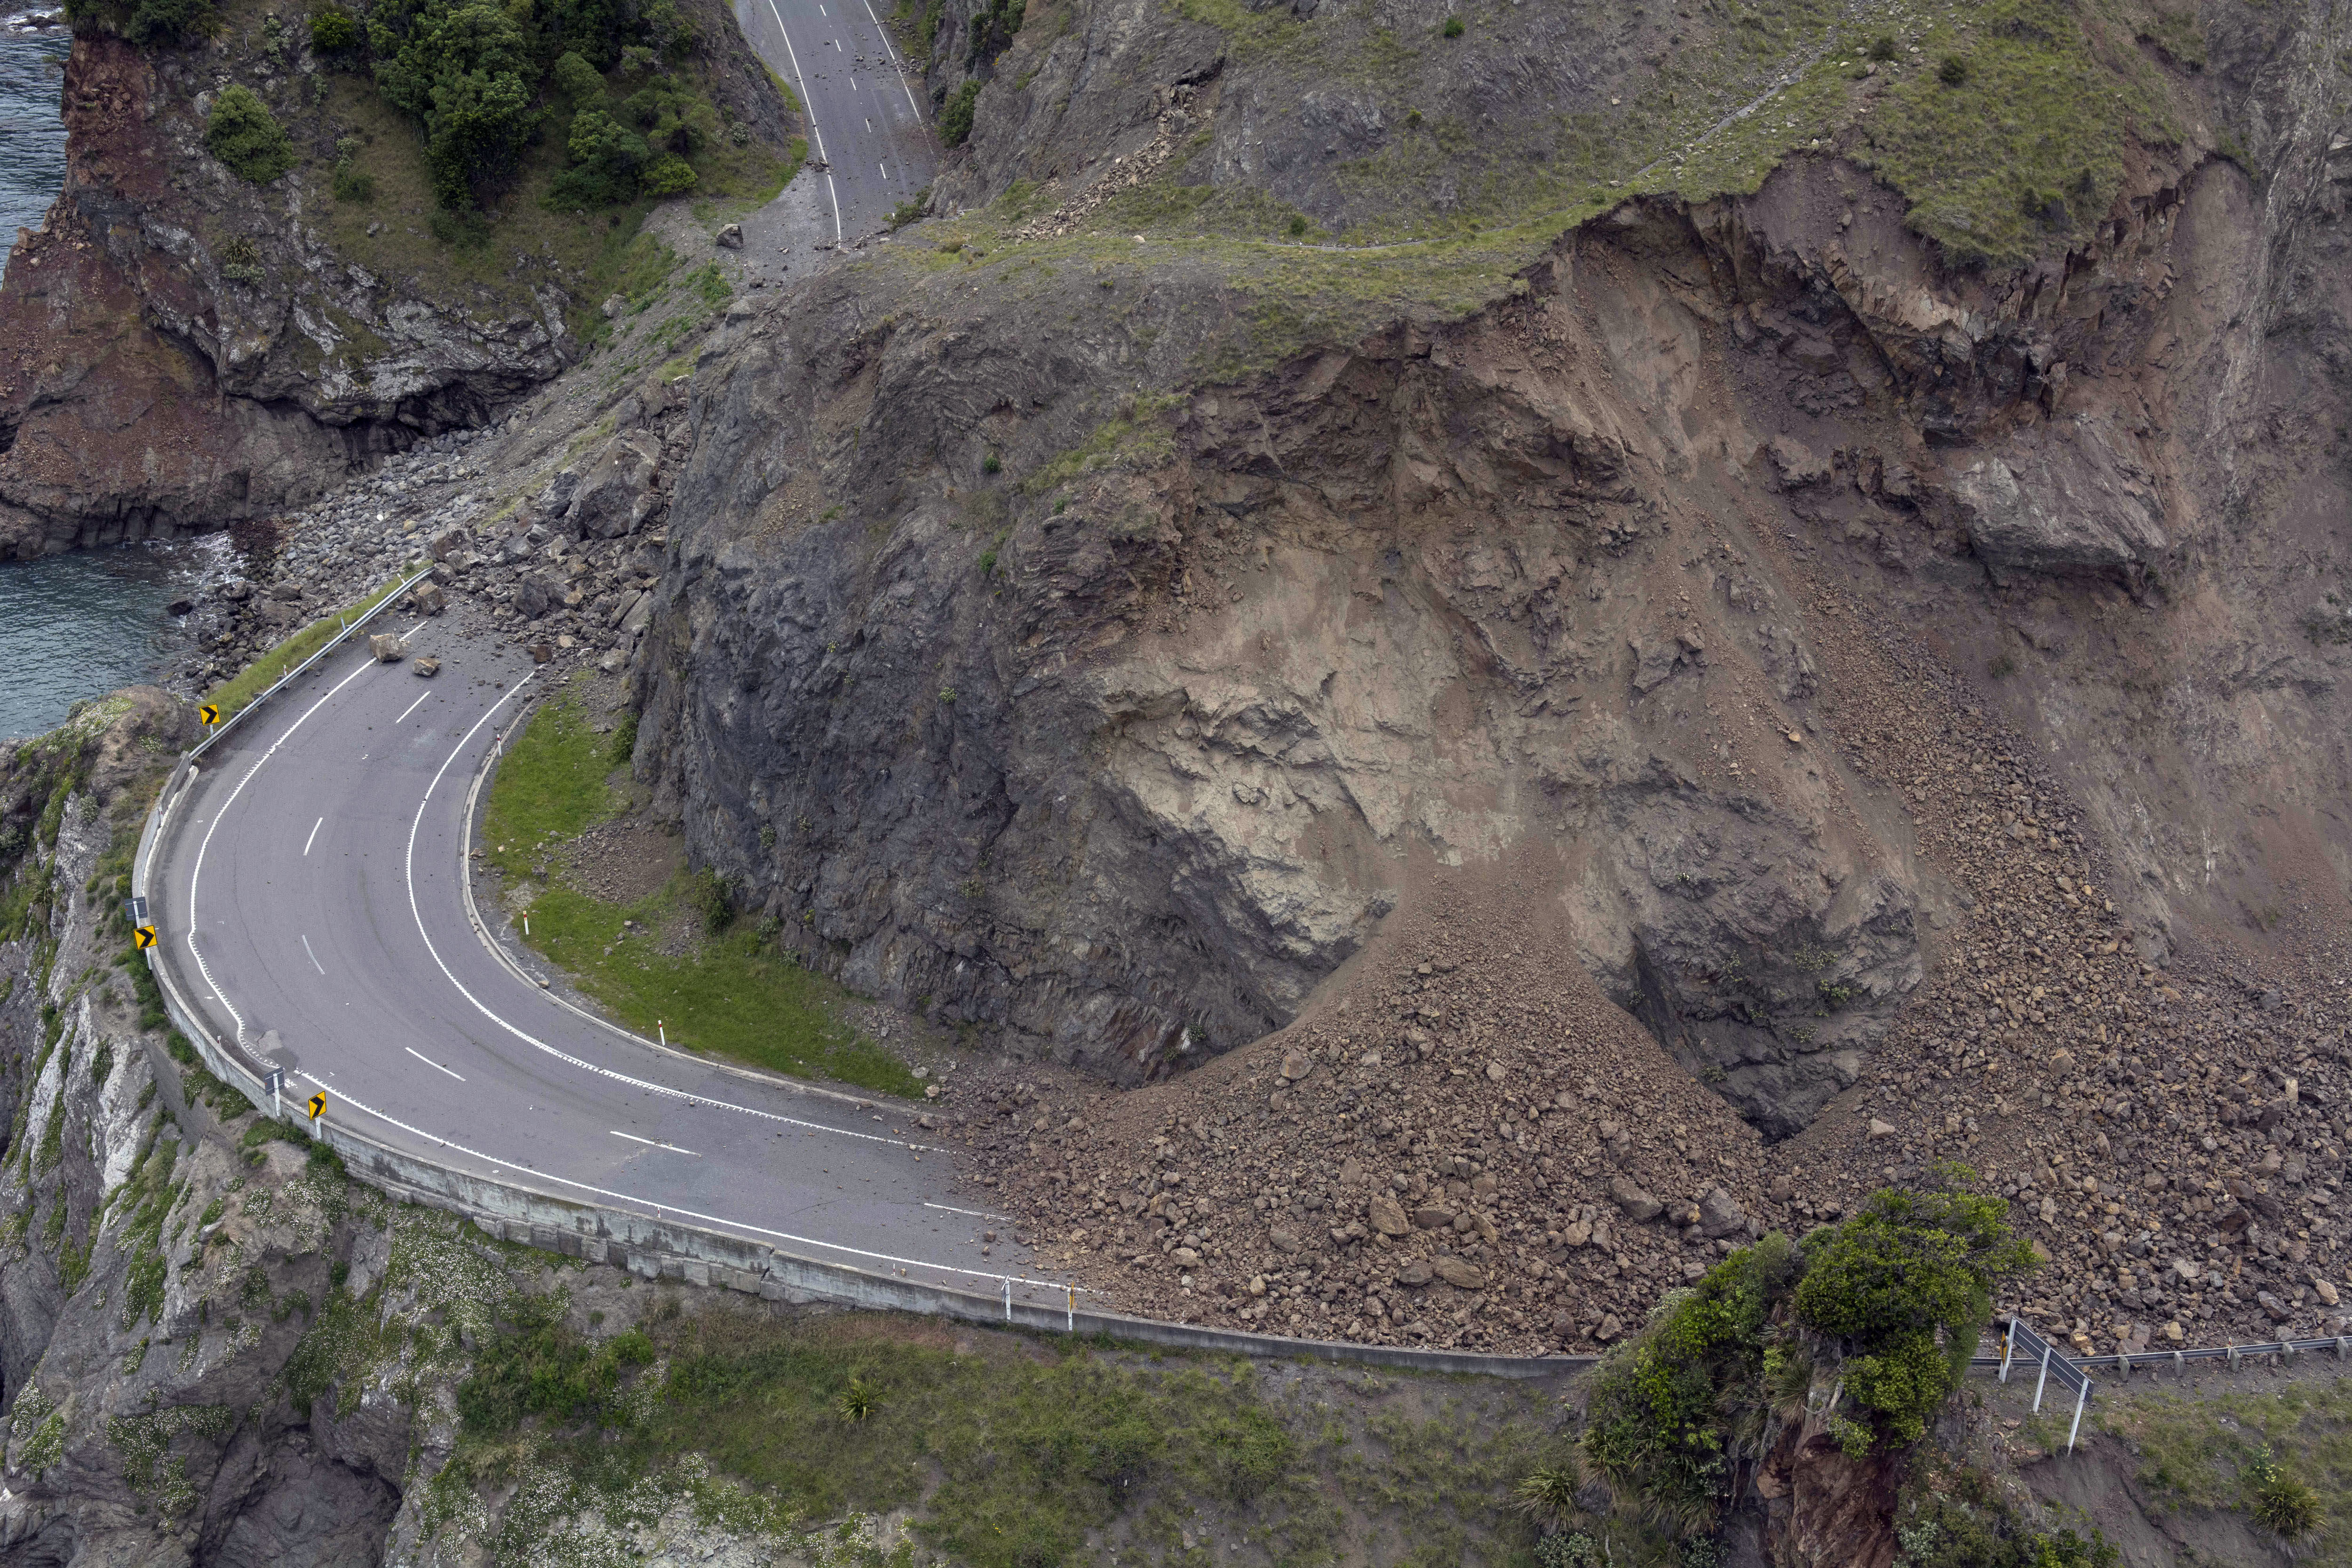 A landslide covers a section of state highway 1 near Kaikoura, New Zealand, Monday, Nov. 14, 2016, after a powerful earthquake. A powerful earthquake that rocked New Zealand on Monday triggered landslides and a small tsunami, cracked apart roads and homes, but largely spared the country the devastation it saw five years ago when a deadly earthquake struck the same region.